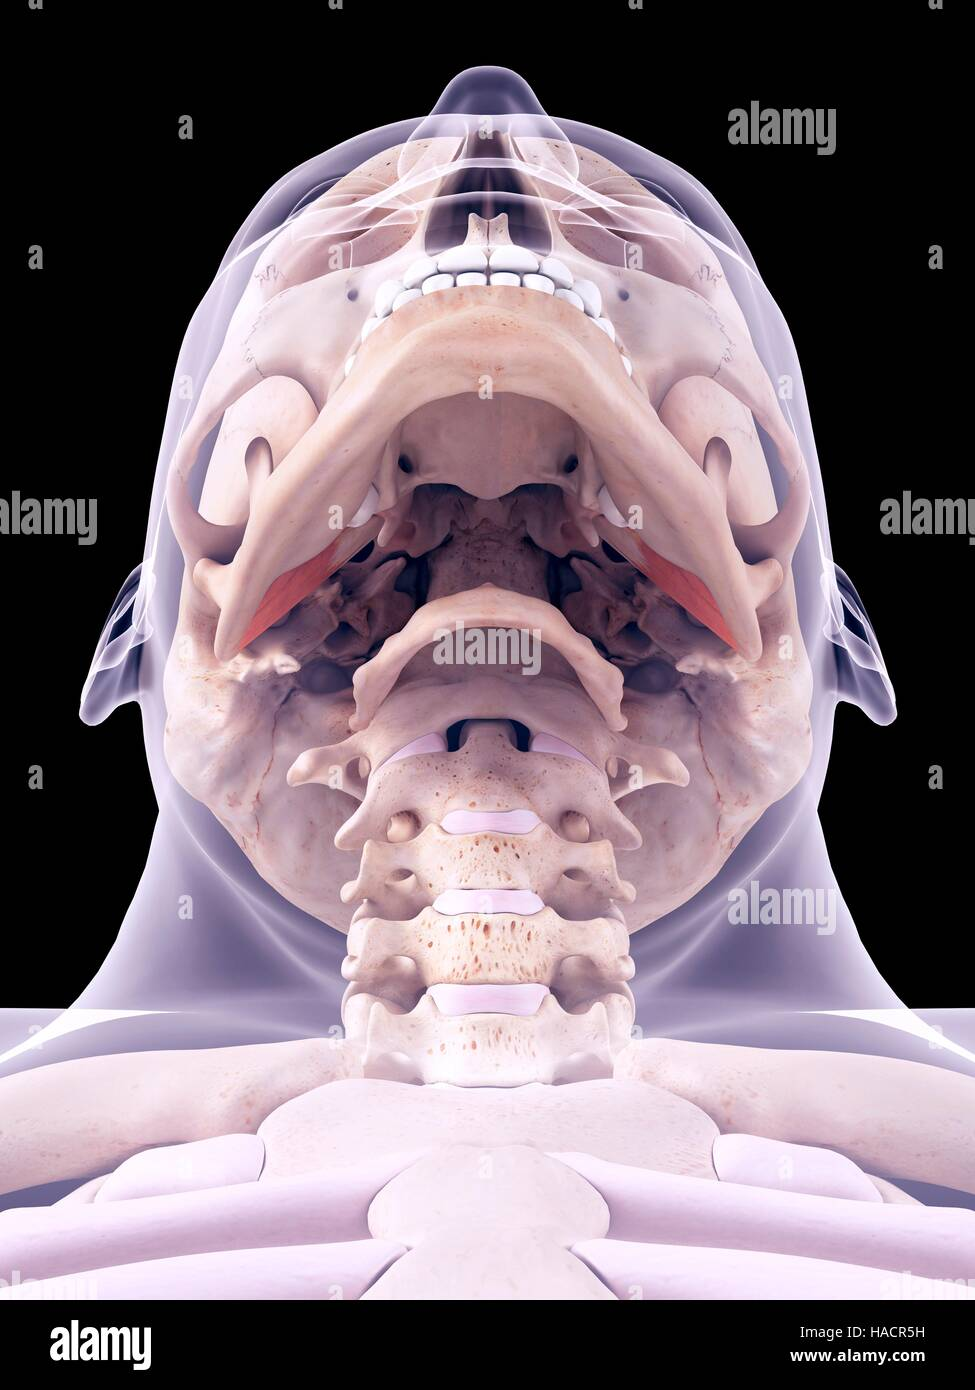 Medical accurate illustration of the external pterygoideus muscles. - Stock Image